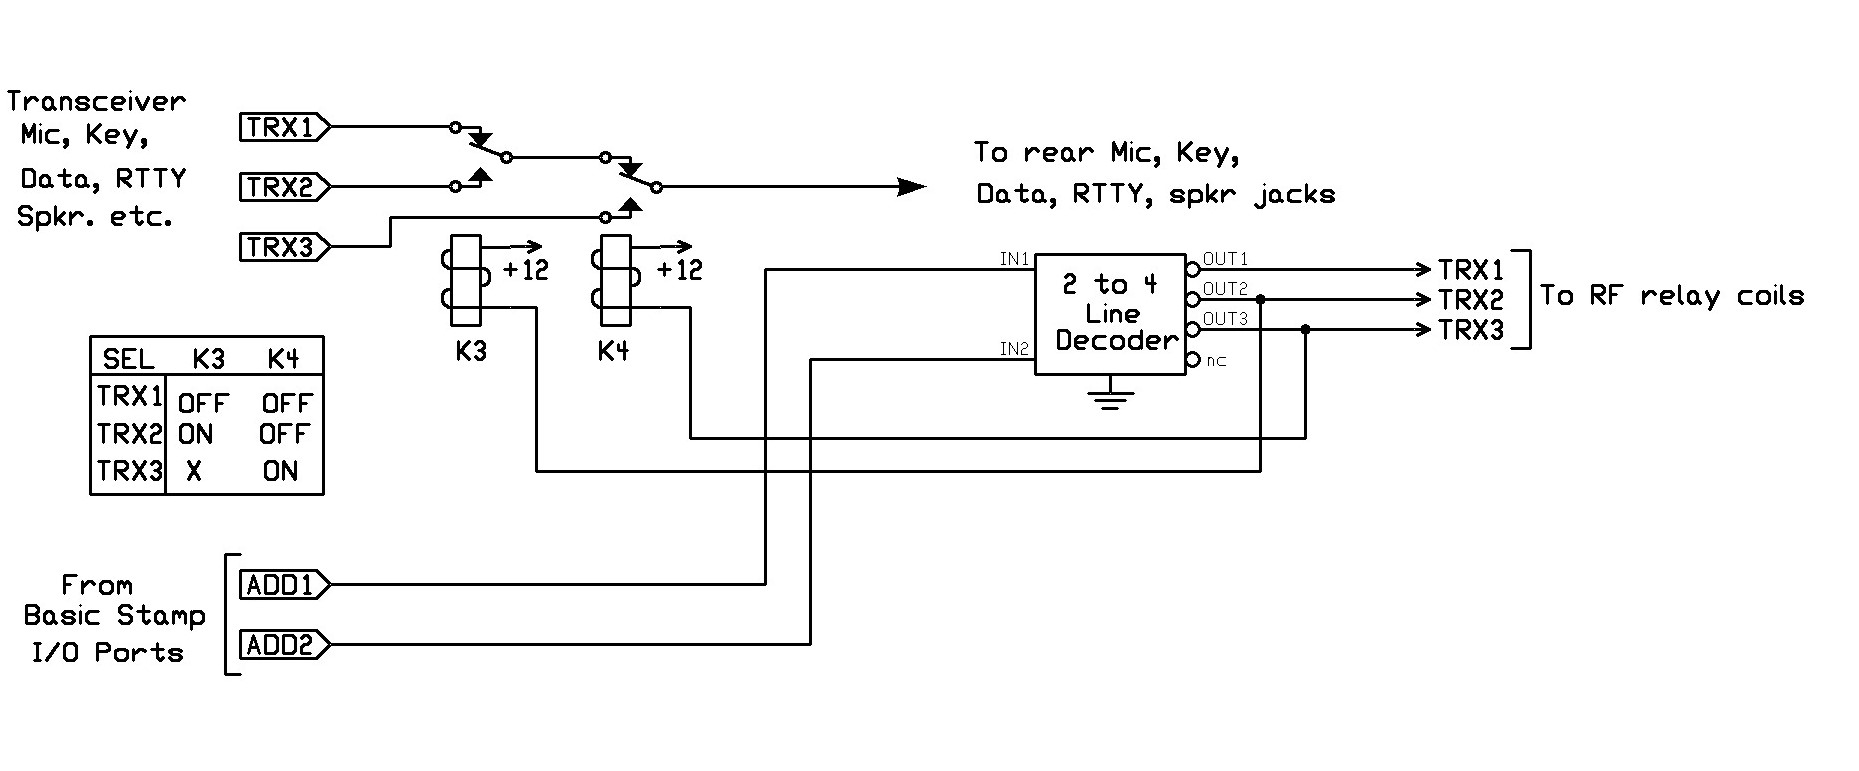 W8zr multicontroller technical description the above figure illustrates the simplified switching of the stationpro ii which allows independent selection of three transceiverexciters shown as trx1 ccuart